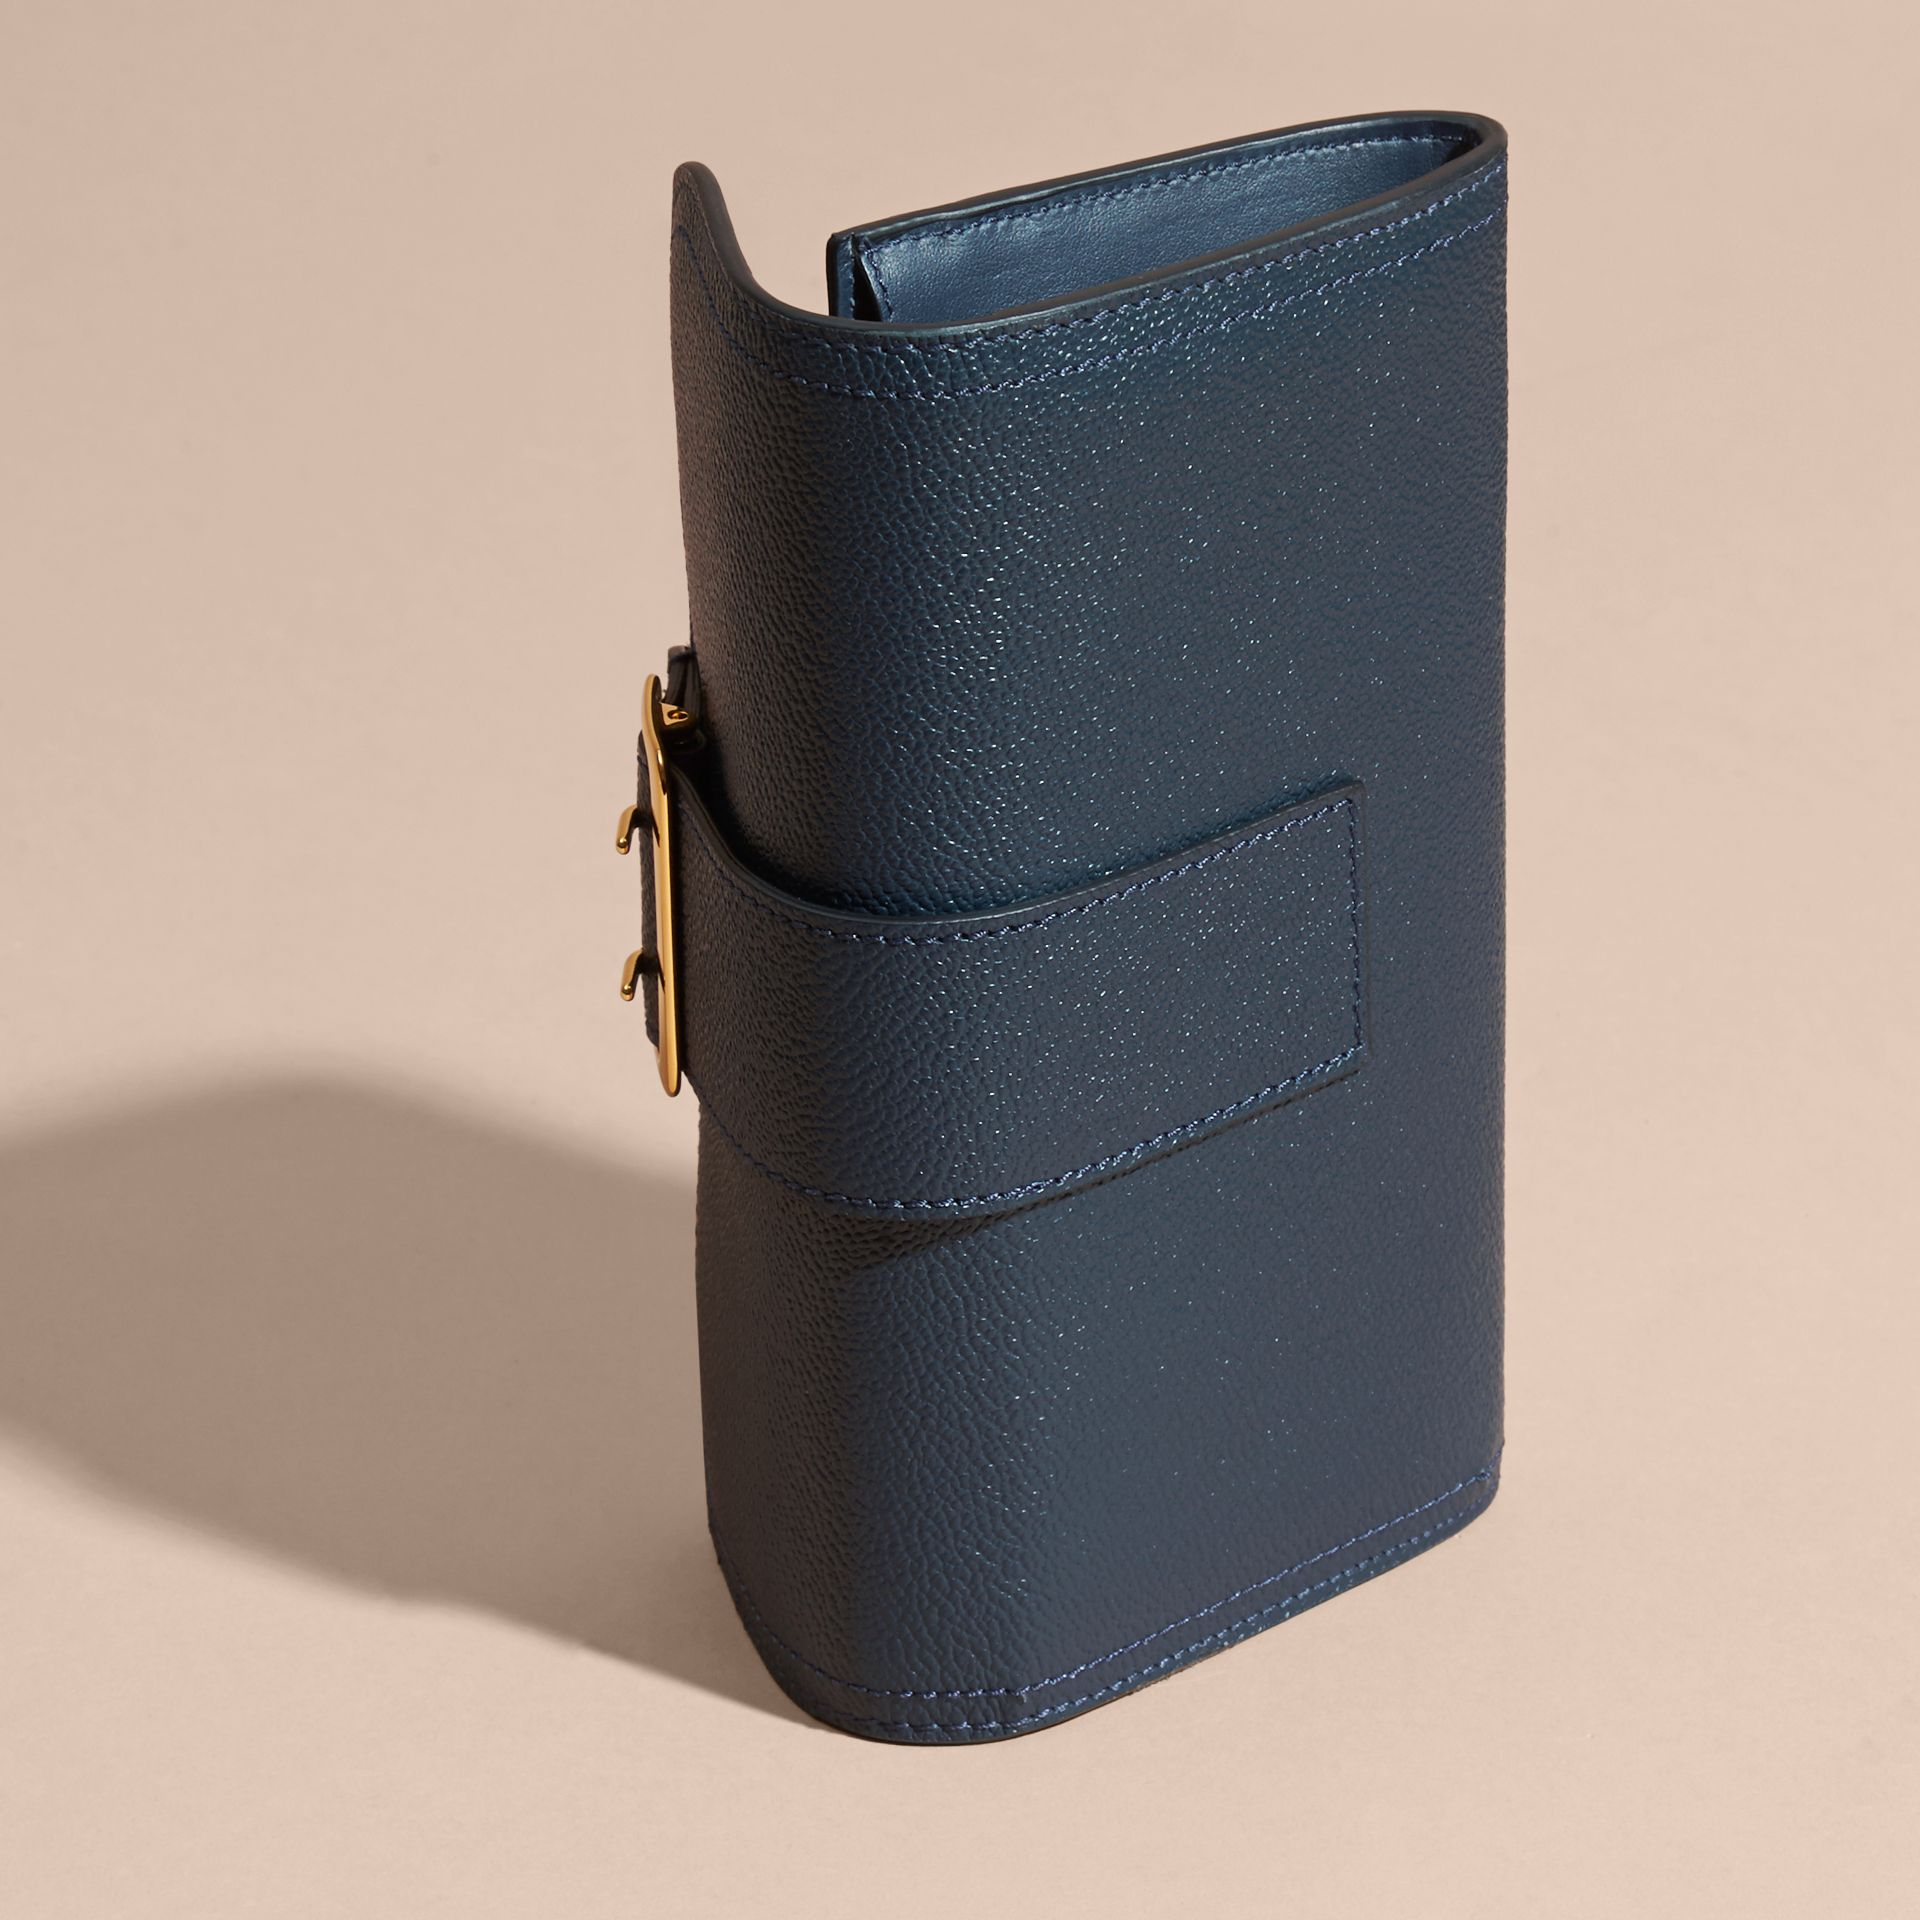 Textured Leather Continental Wallet Blue Carbon - gallery image 3